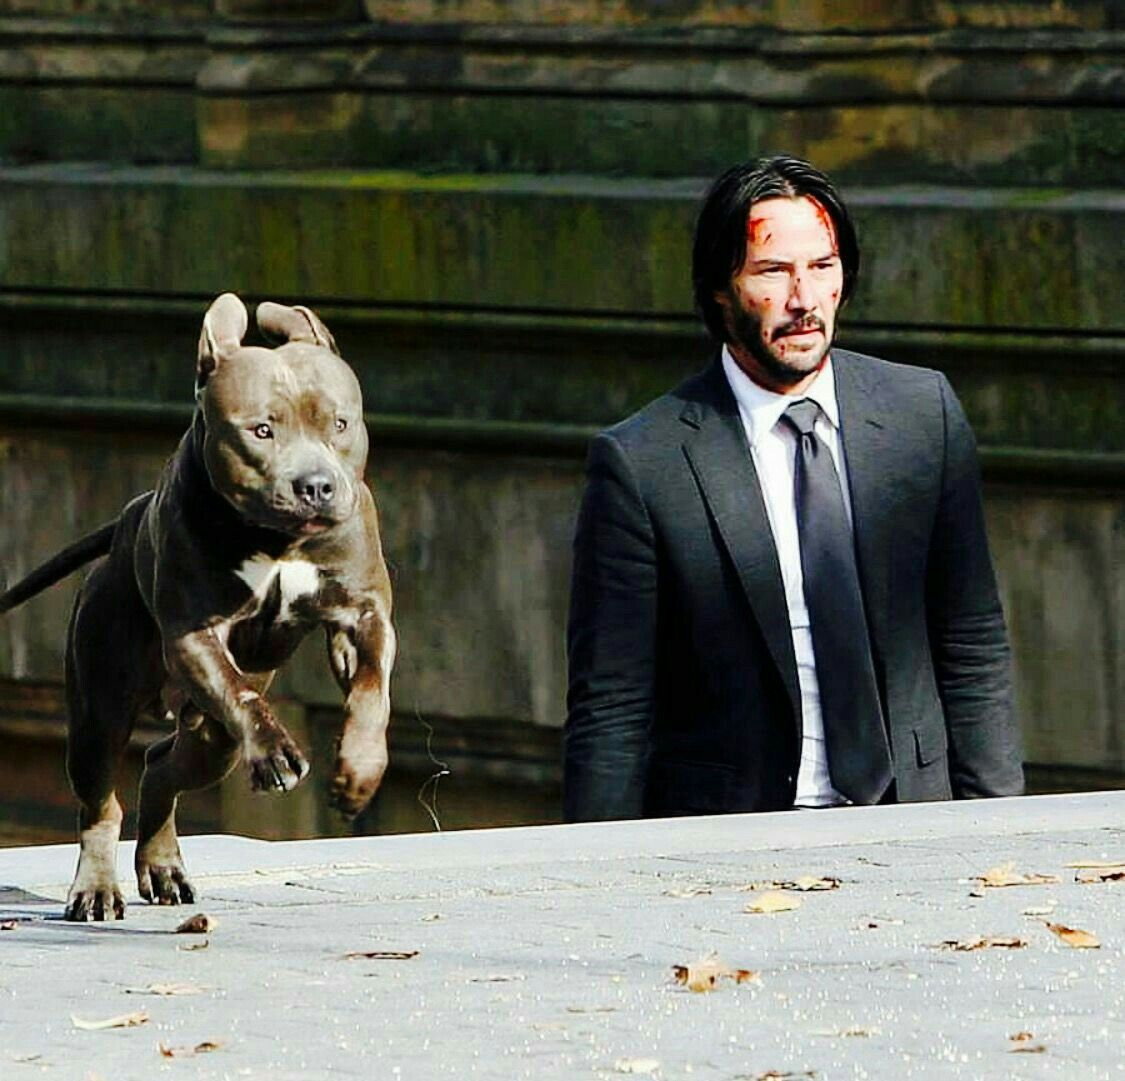 Pin by Tiffany on The Harem in 2019 Keanu reeves john